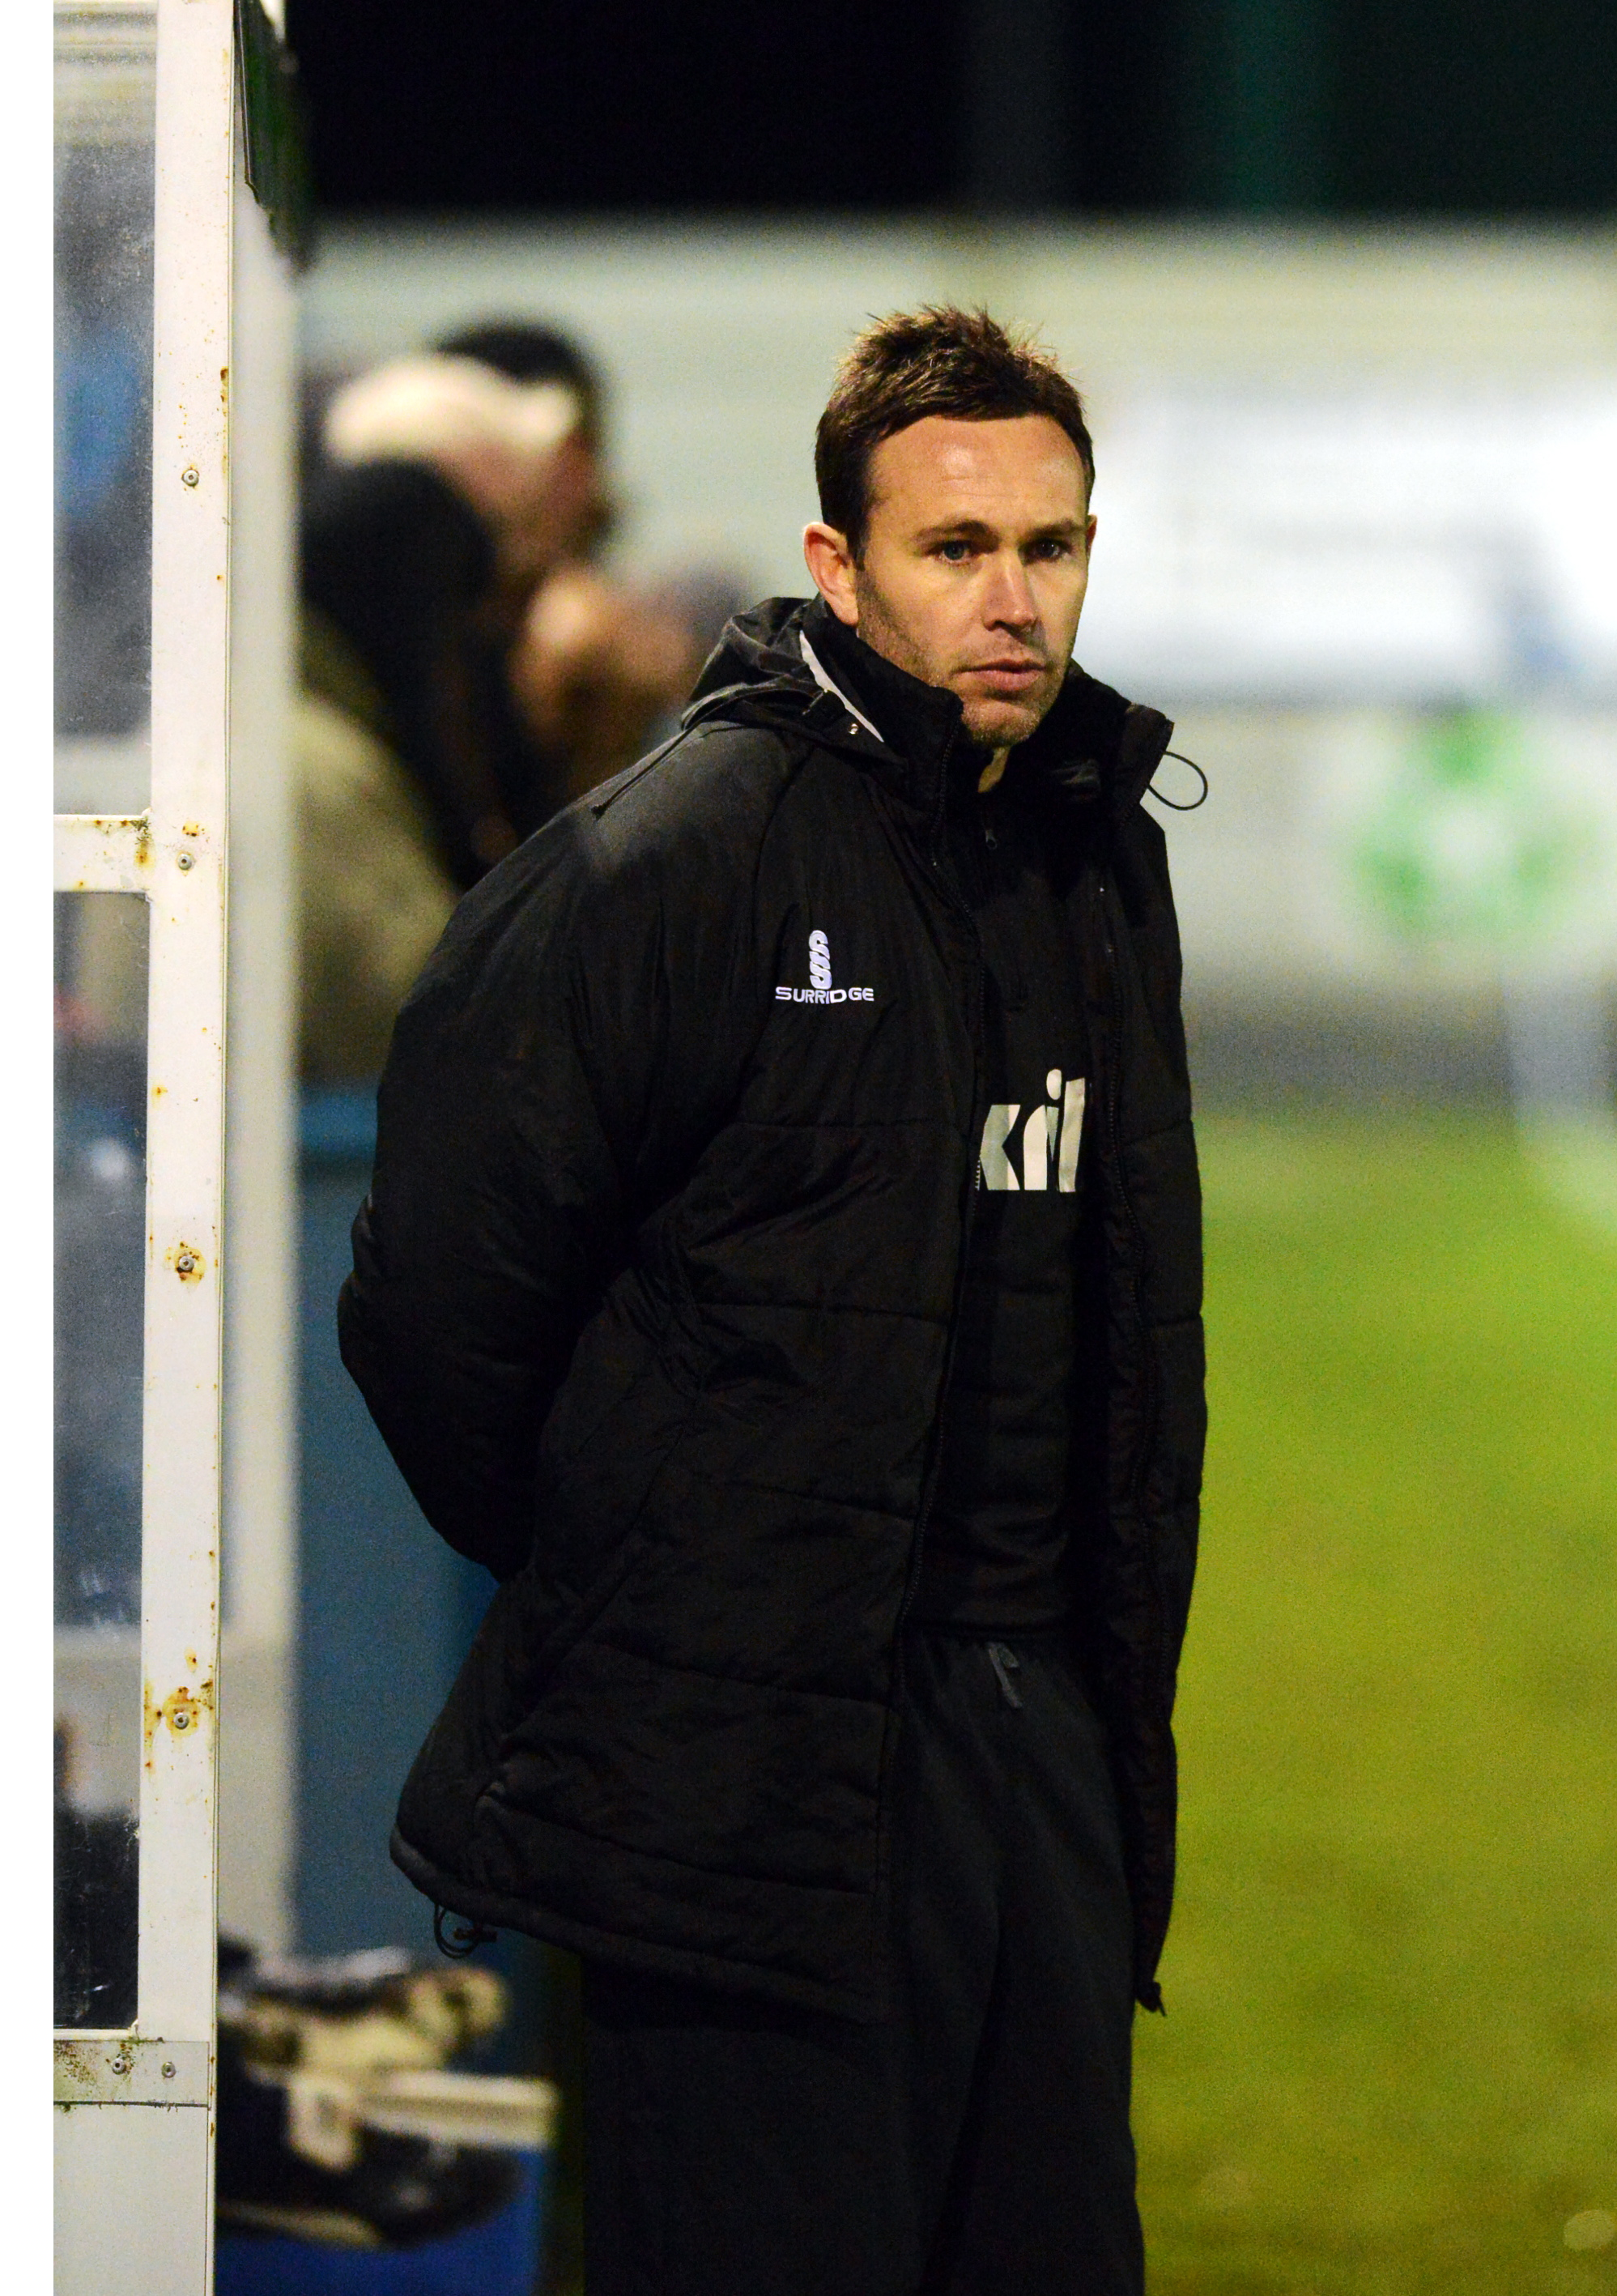 Guiseley take another shot at upsetting FA Trophy odds against  Aldershot